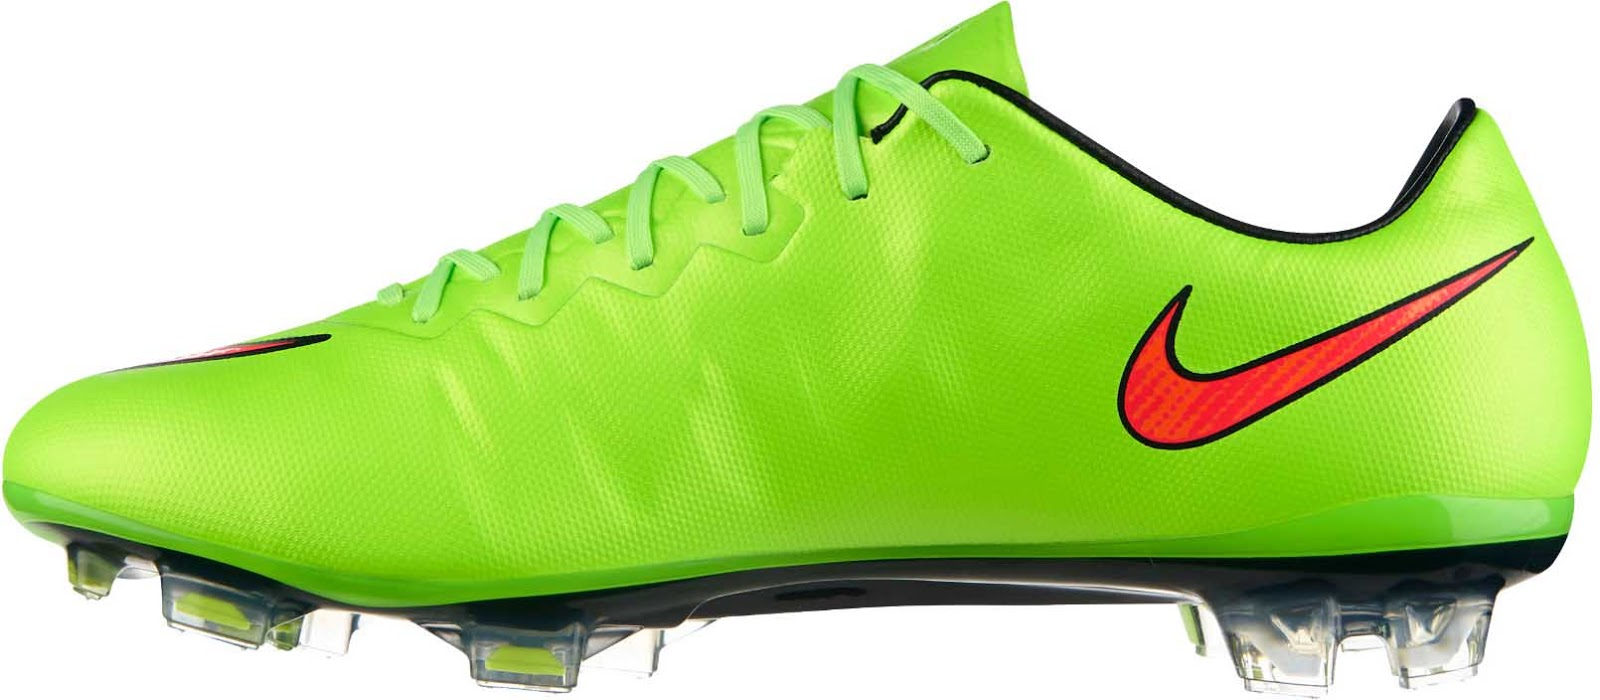 electric green nike mercurial vapor x 14 15 boot released. Black Bedroom Furniture Sets. Home Design Ideas